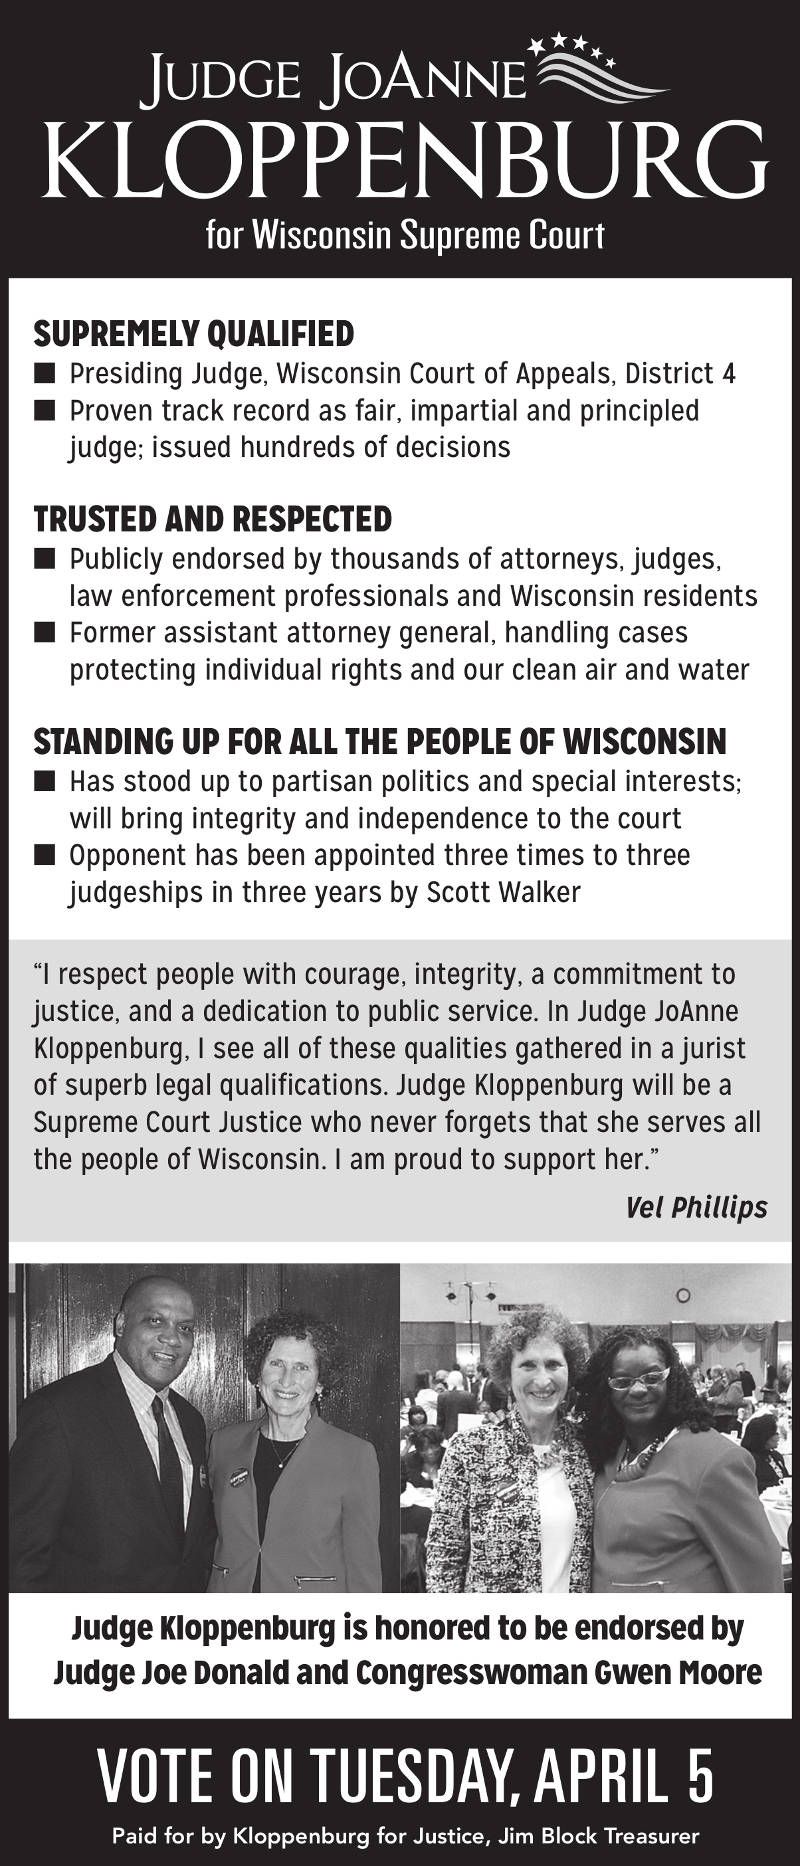 vote-judge-joanne-kloppenburg-wisconsin-supreme-court